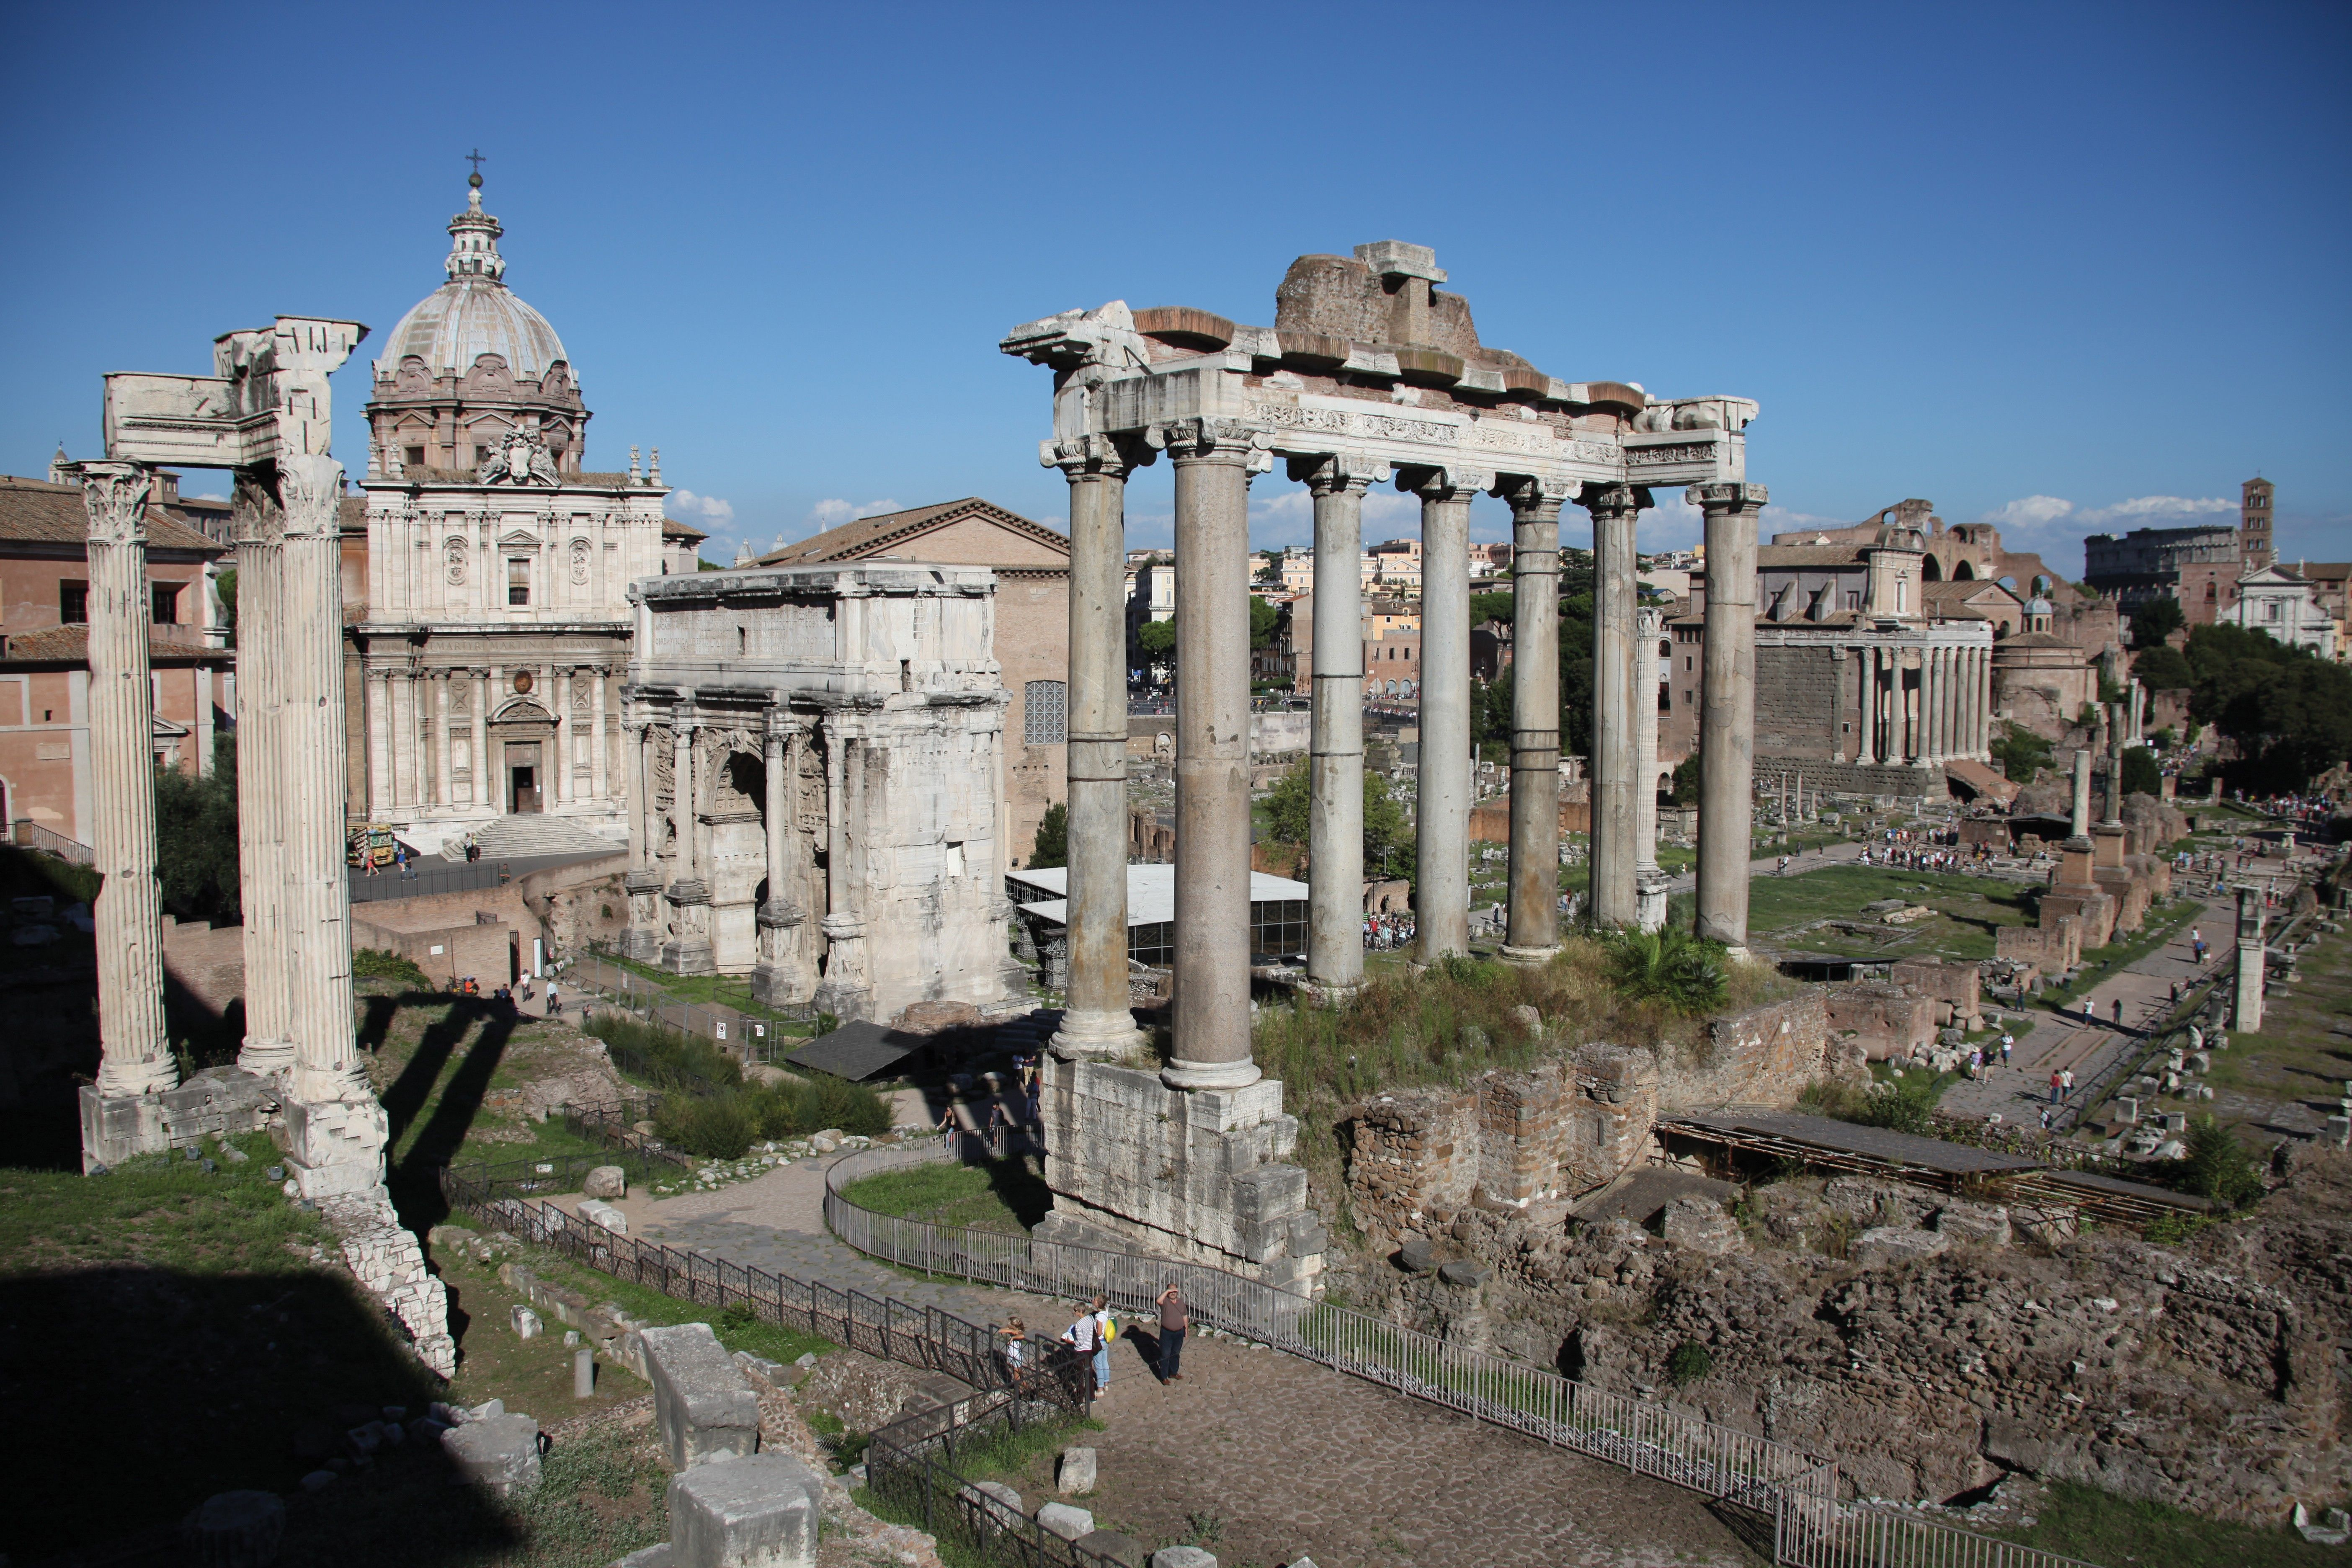 A photograph of the Roman Forum in Rome, Italy.